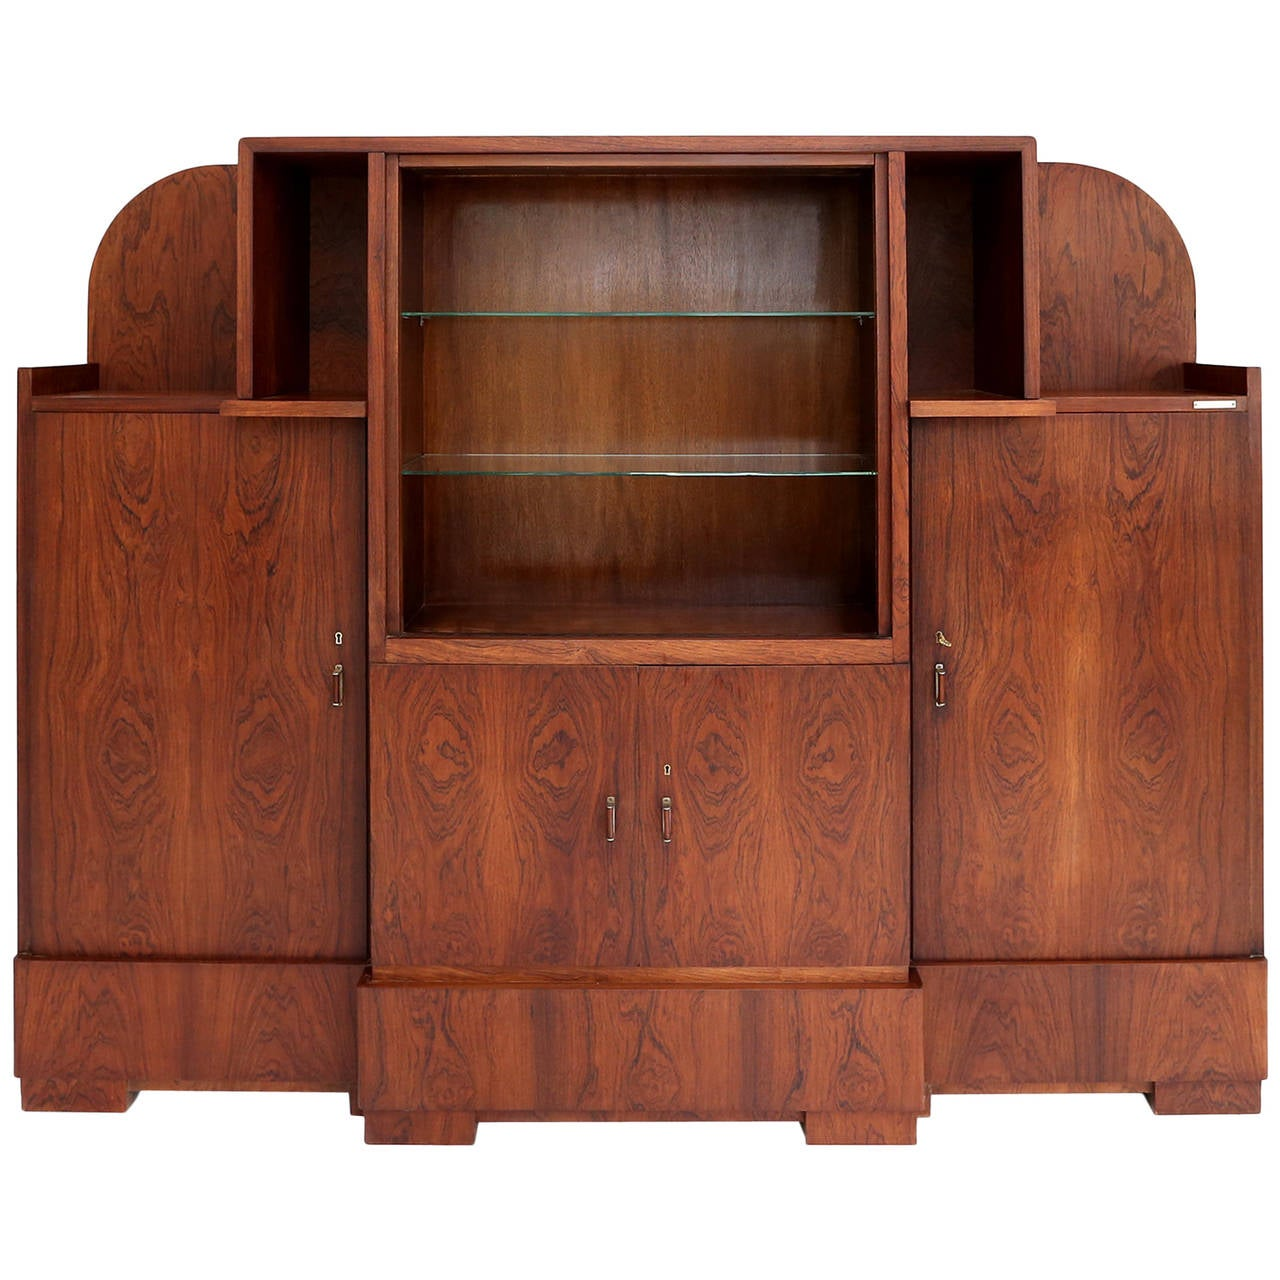 art deco piece by henry van de velde for sale at 1stdibs. Black Bedroom Furniture Sets. Home Design Ideas